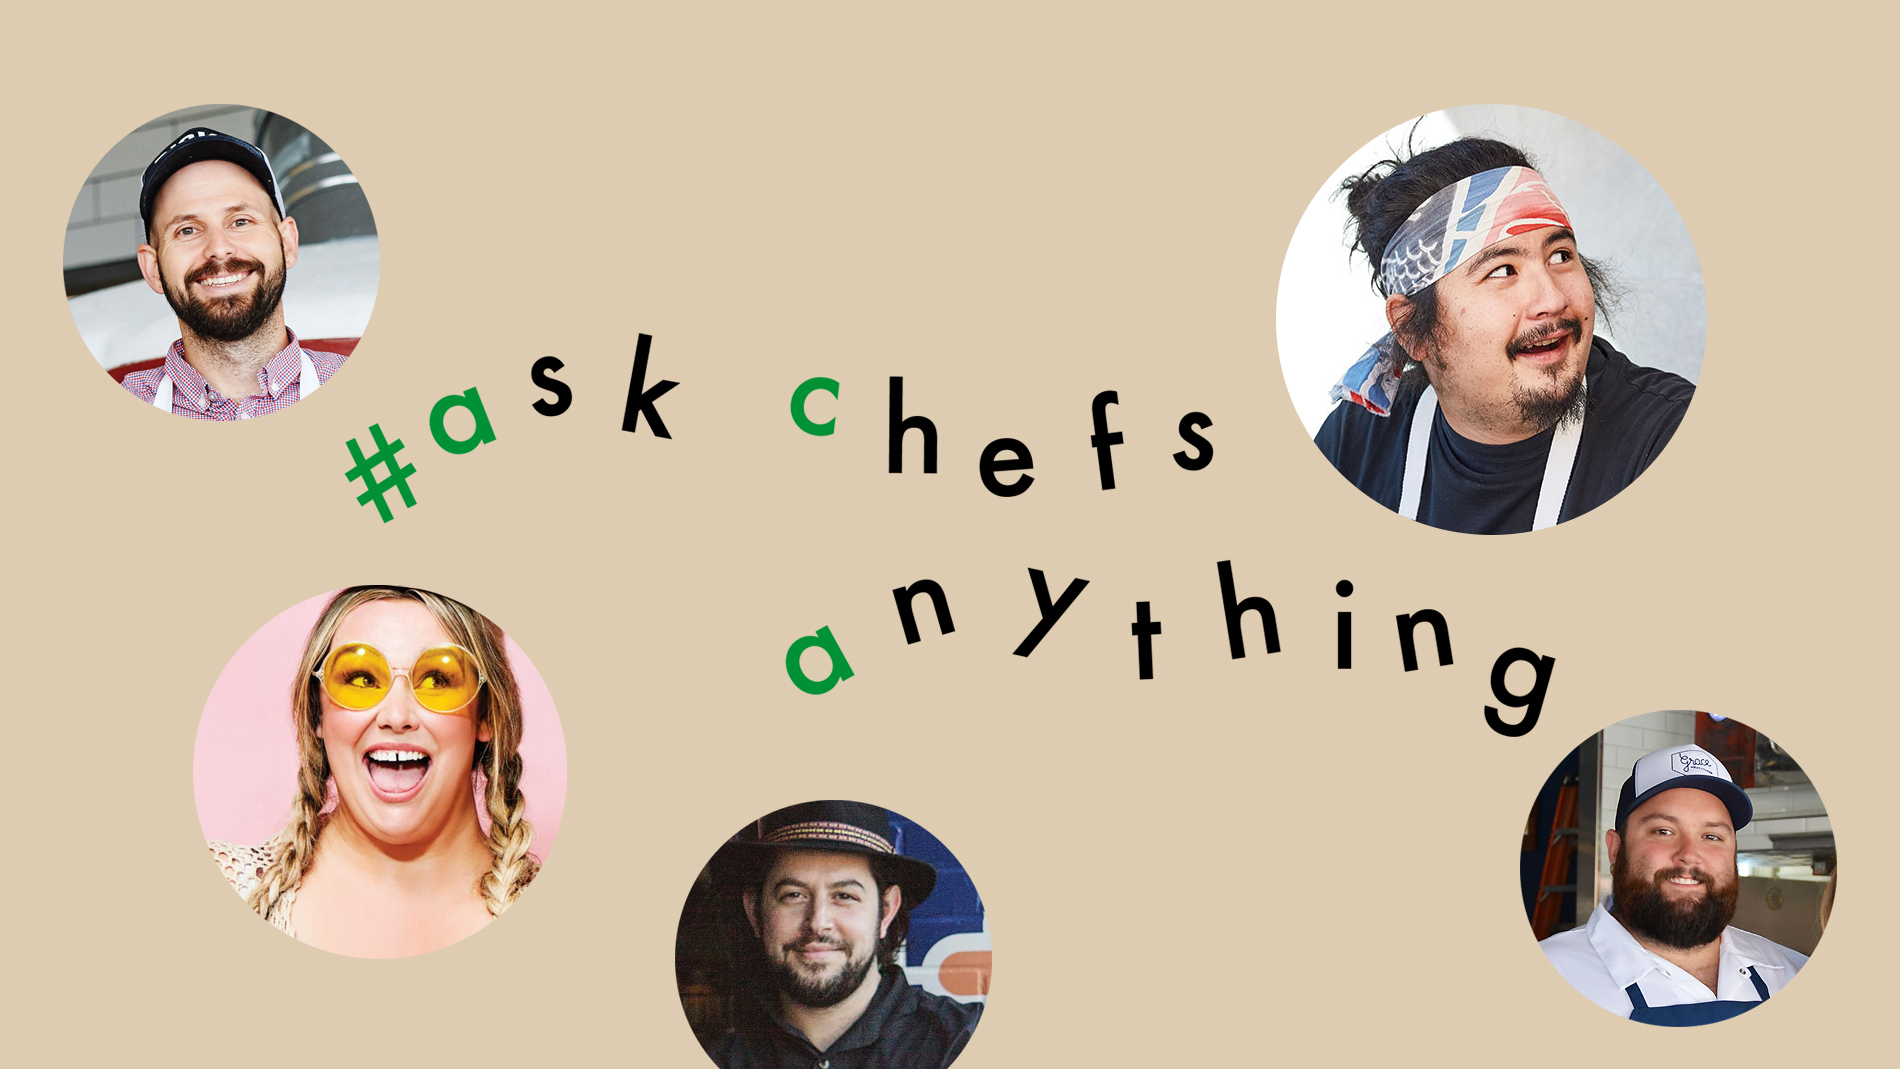 Ask Chefs Anything fundraiser coming to St. Louis June 3-7